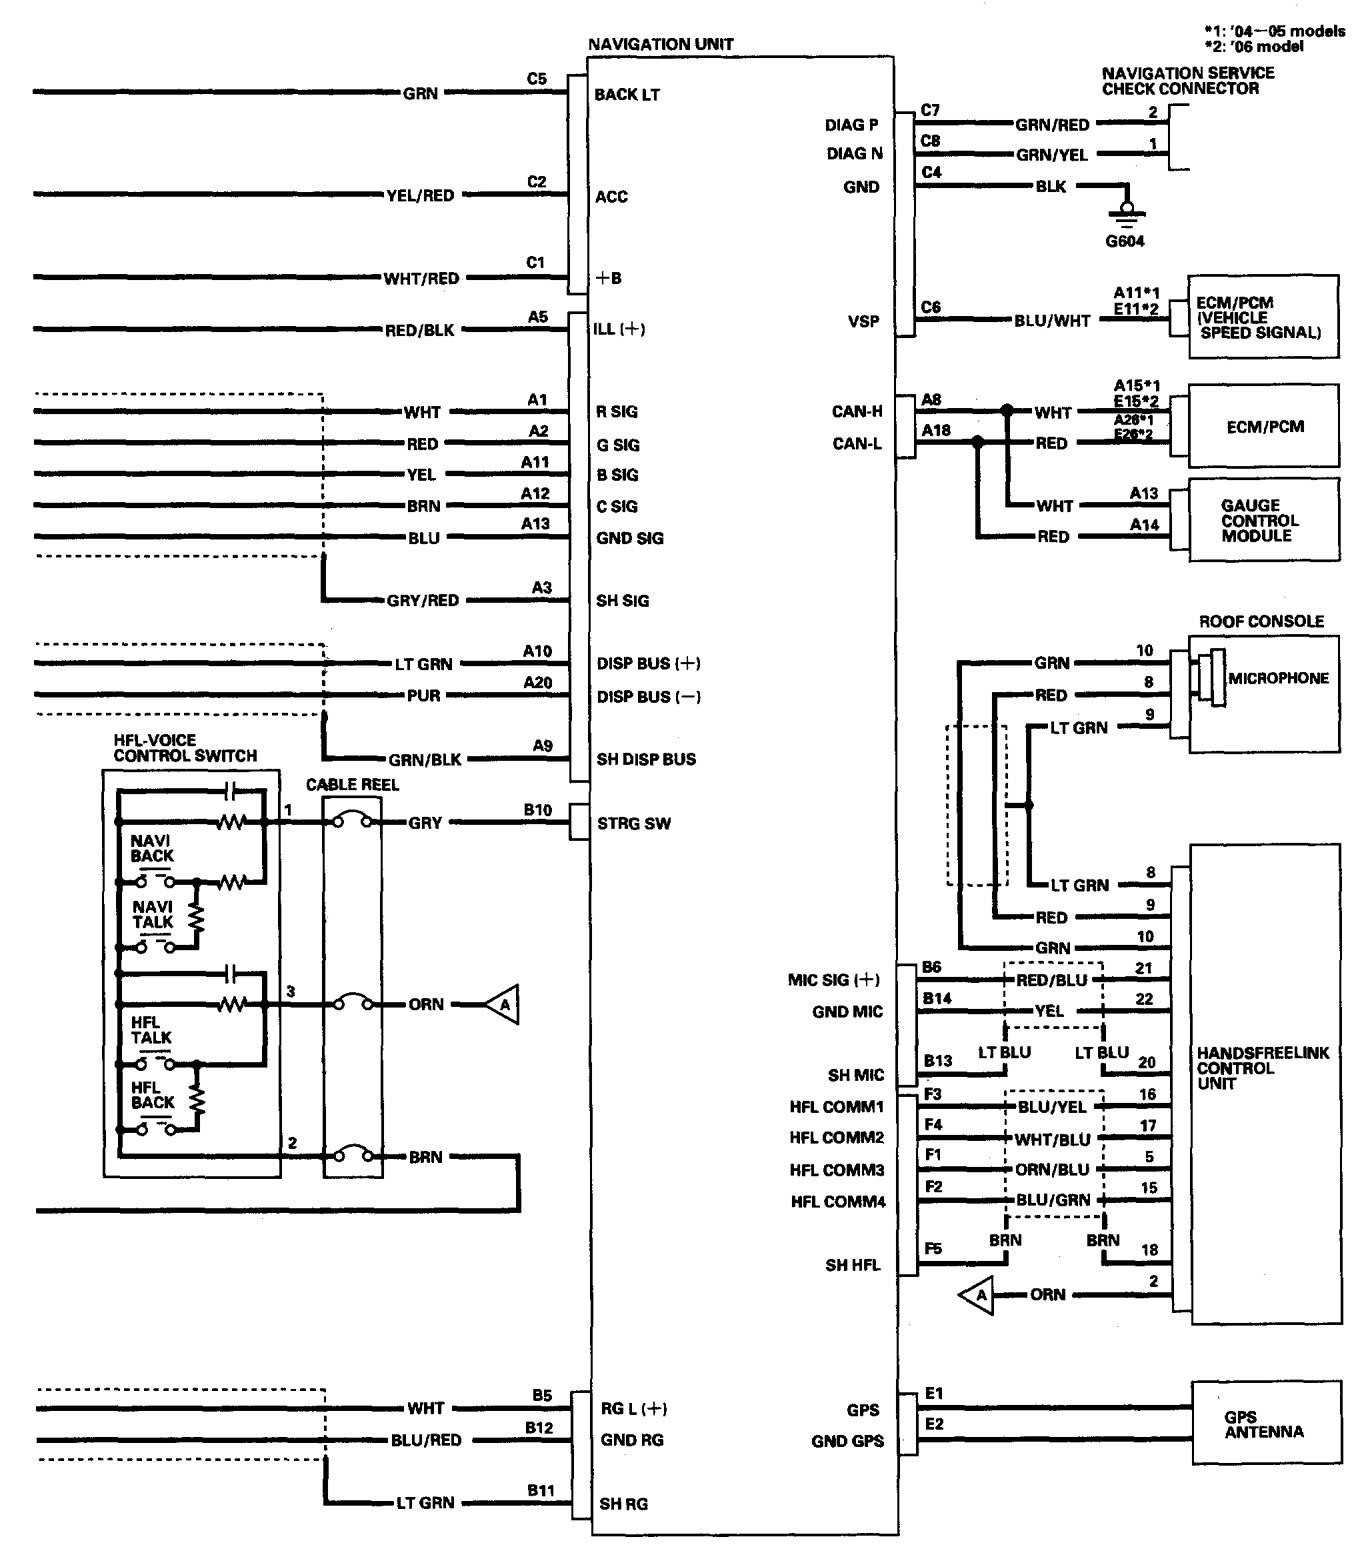 2000 Acura Tl Engine Diagram 05 Acura Tl Wiring Diagram Wiring Diagram Used Of 2000 Acura Tl Engine Diagram